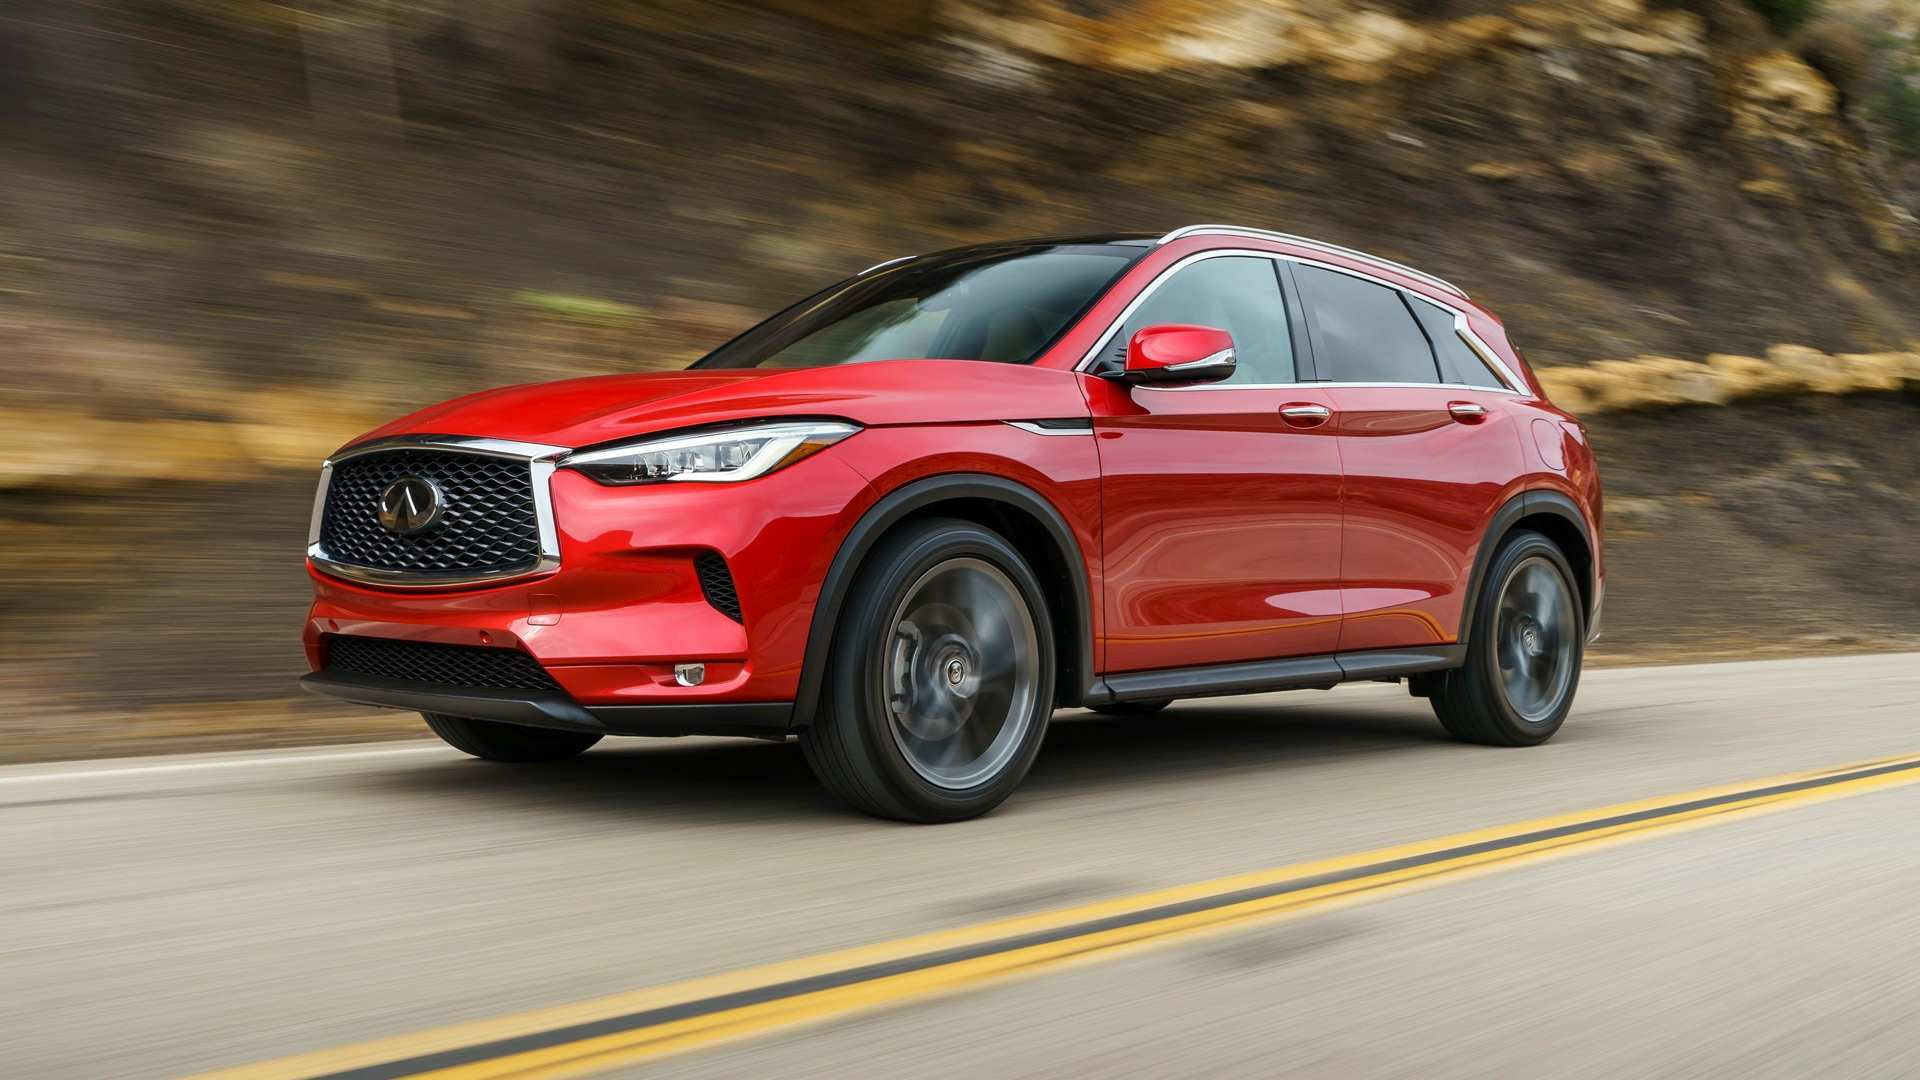 15 All New 2020 Infiniti Qx50 Mpg Reviews with 2020 Infiniti Qx50 Mpg